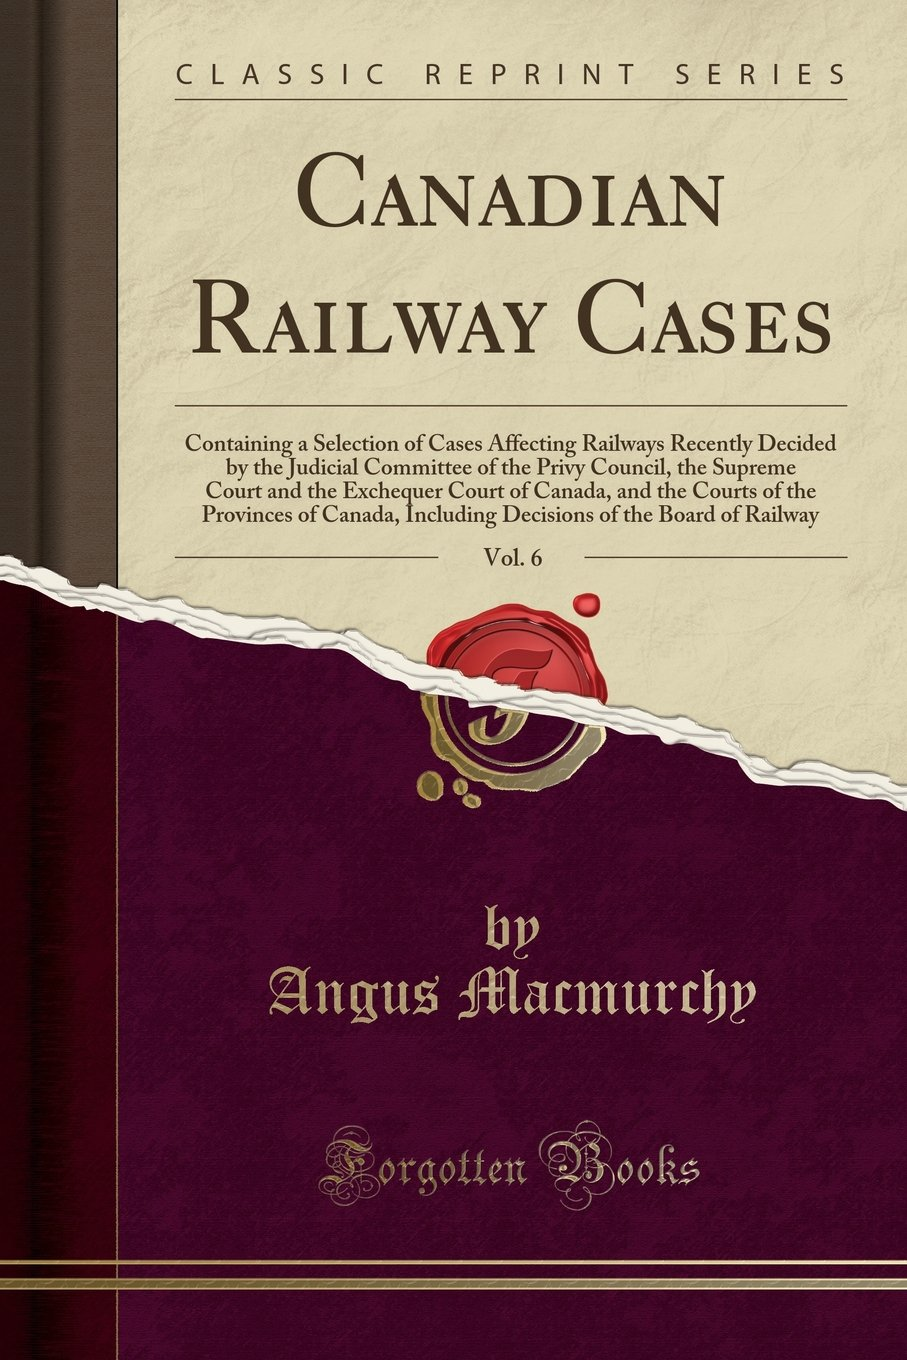 Download Canadian Railway Cases, Vol. 6: Containing a Selection of Cases Affecting Railways Recently Decided by the Judicial Committee of the Privy Council, ... of the Provinces of Canada, Including D ebook